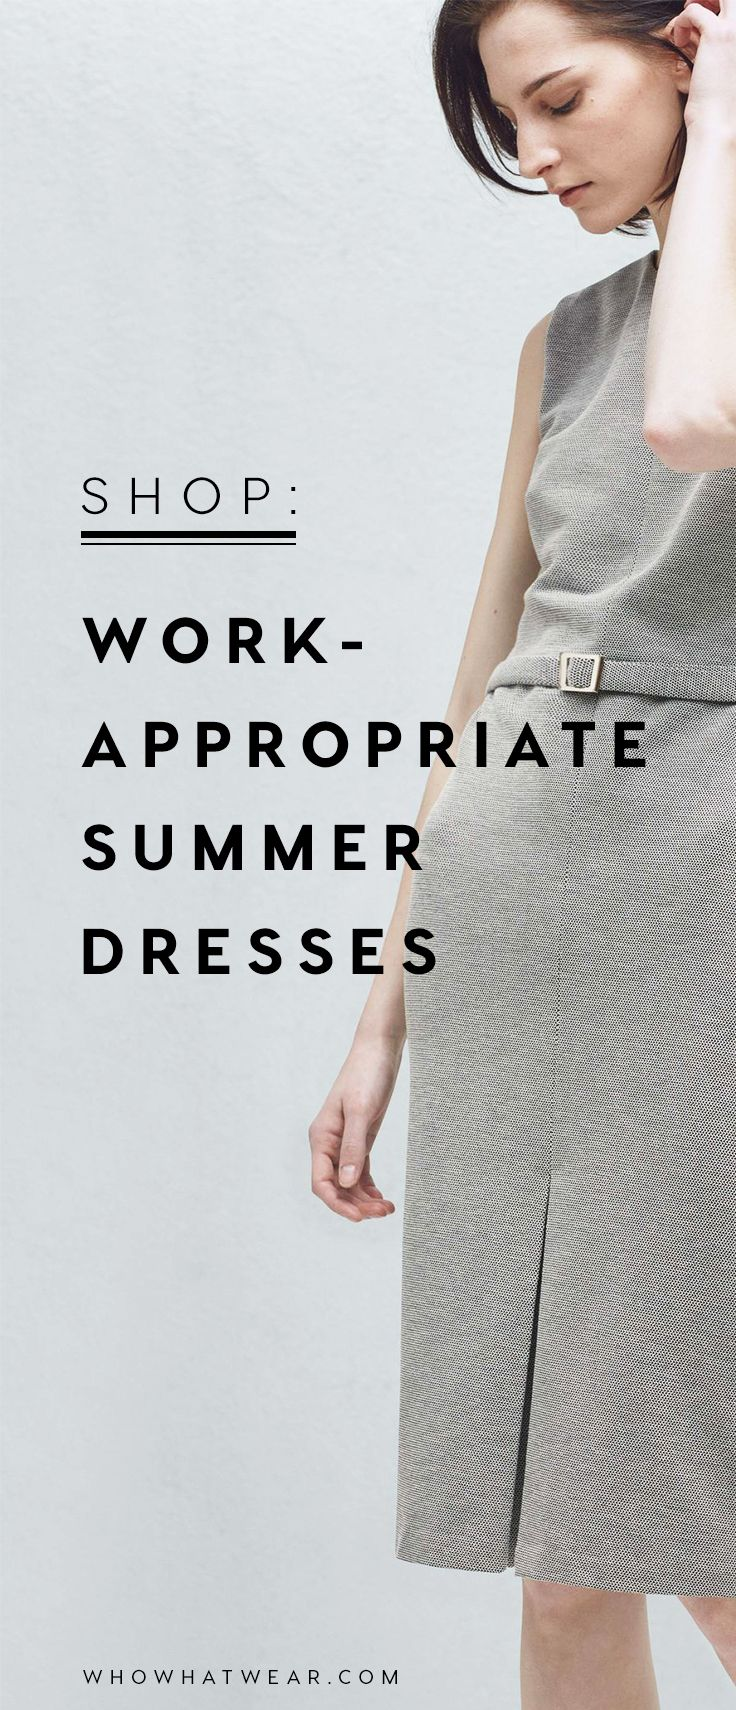 Dresses your can wear to the office in the summertime